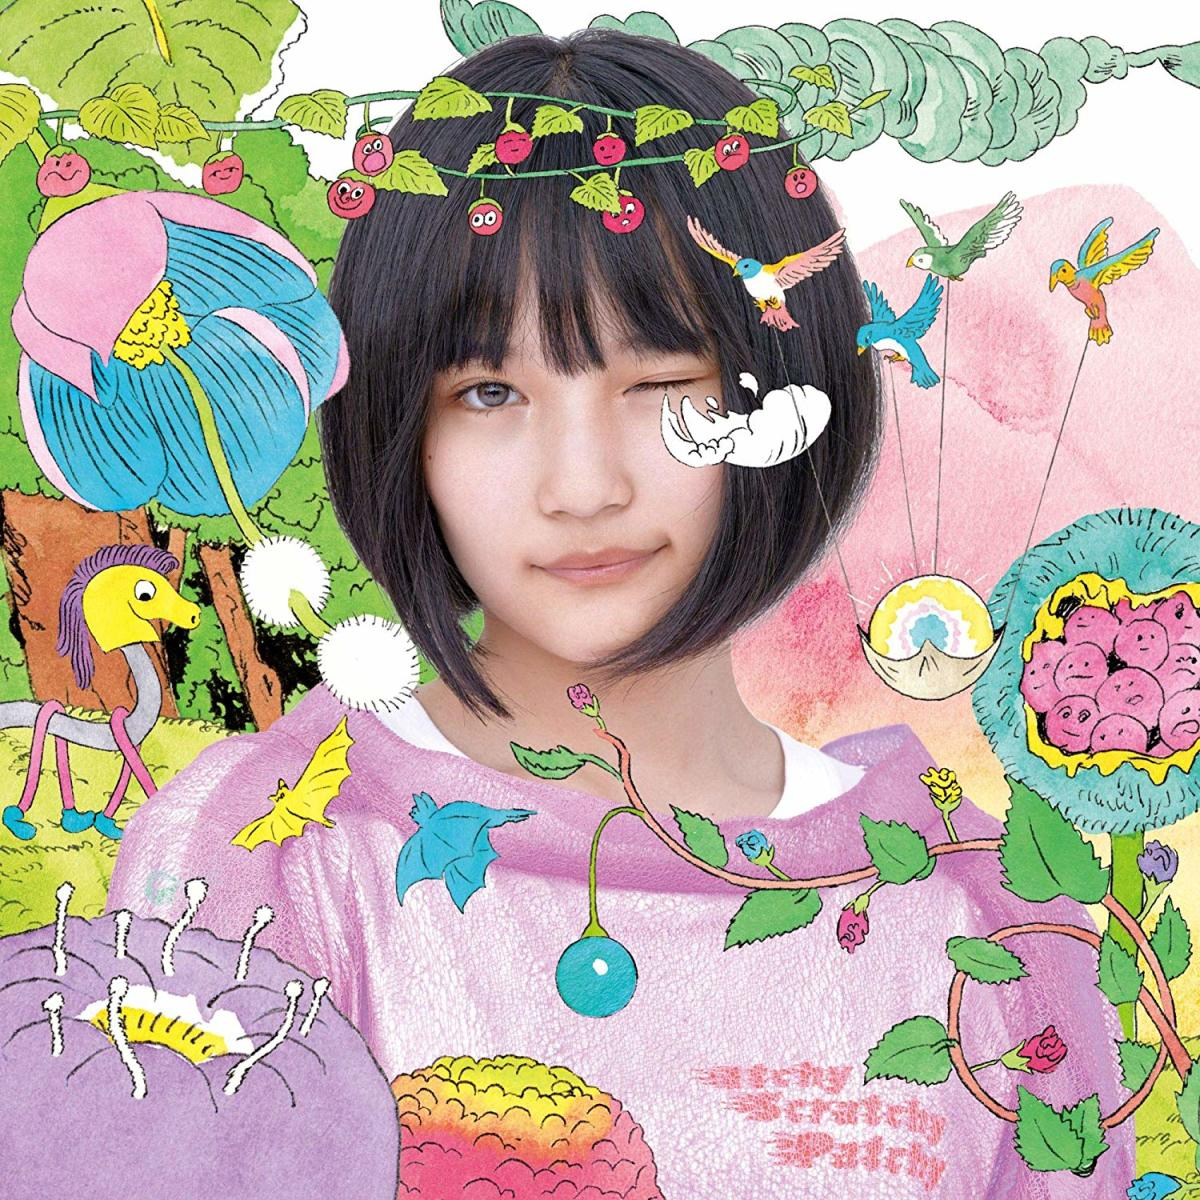 A Review and Analysis of the Song Sustainable by Japanese Pop Music Group Akb48